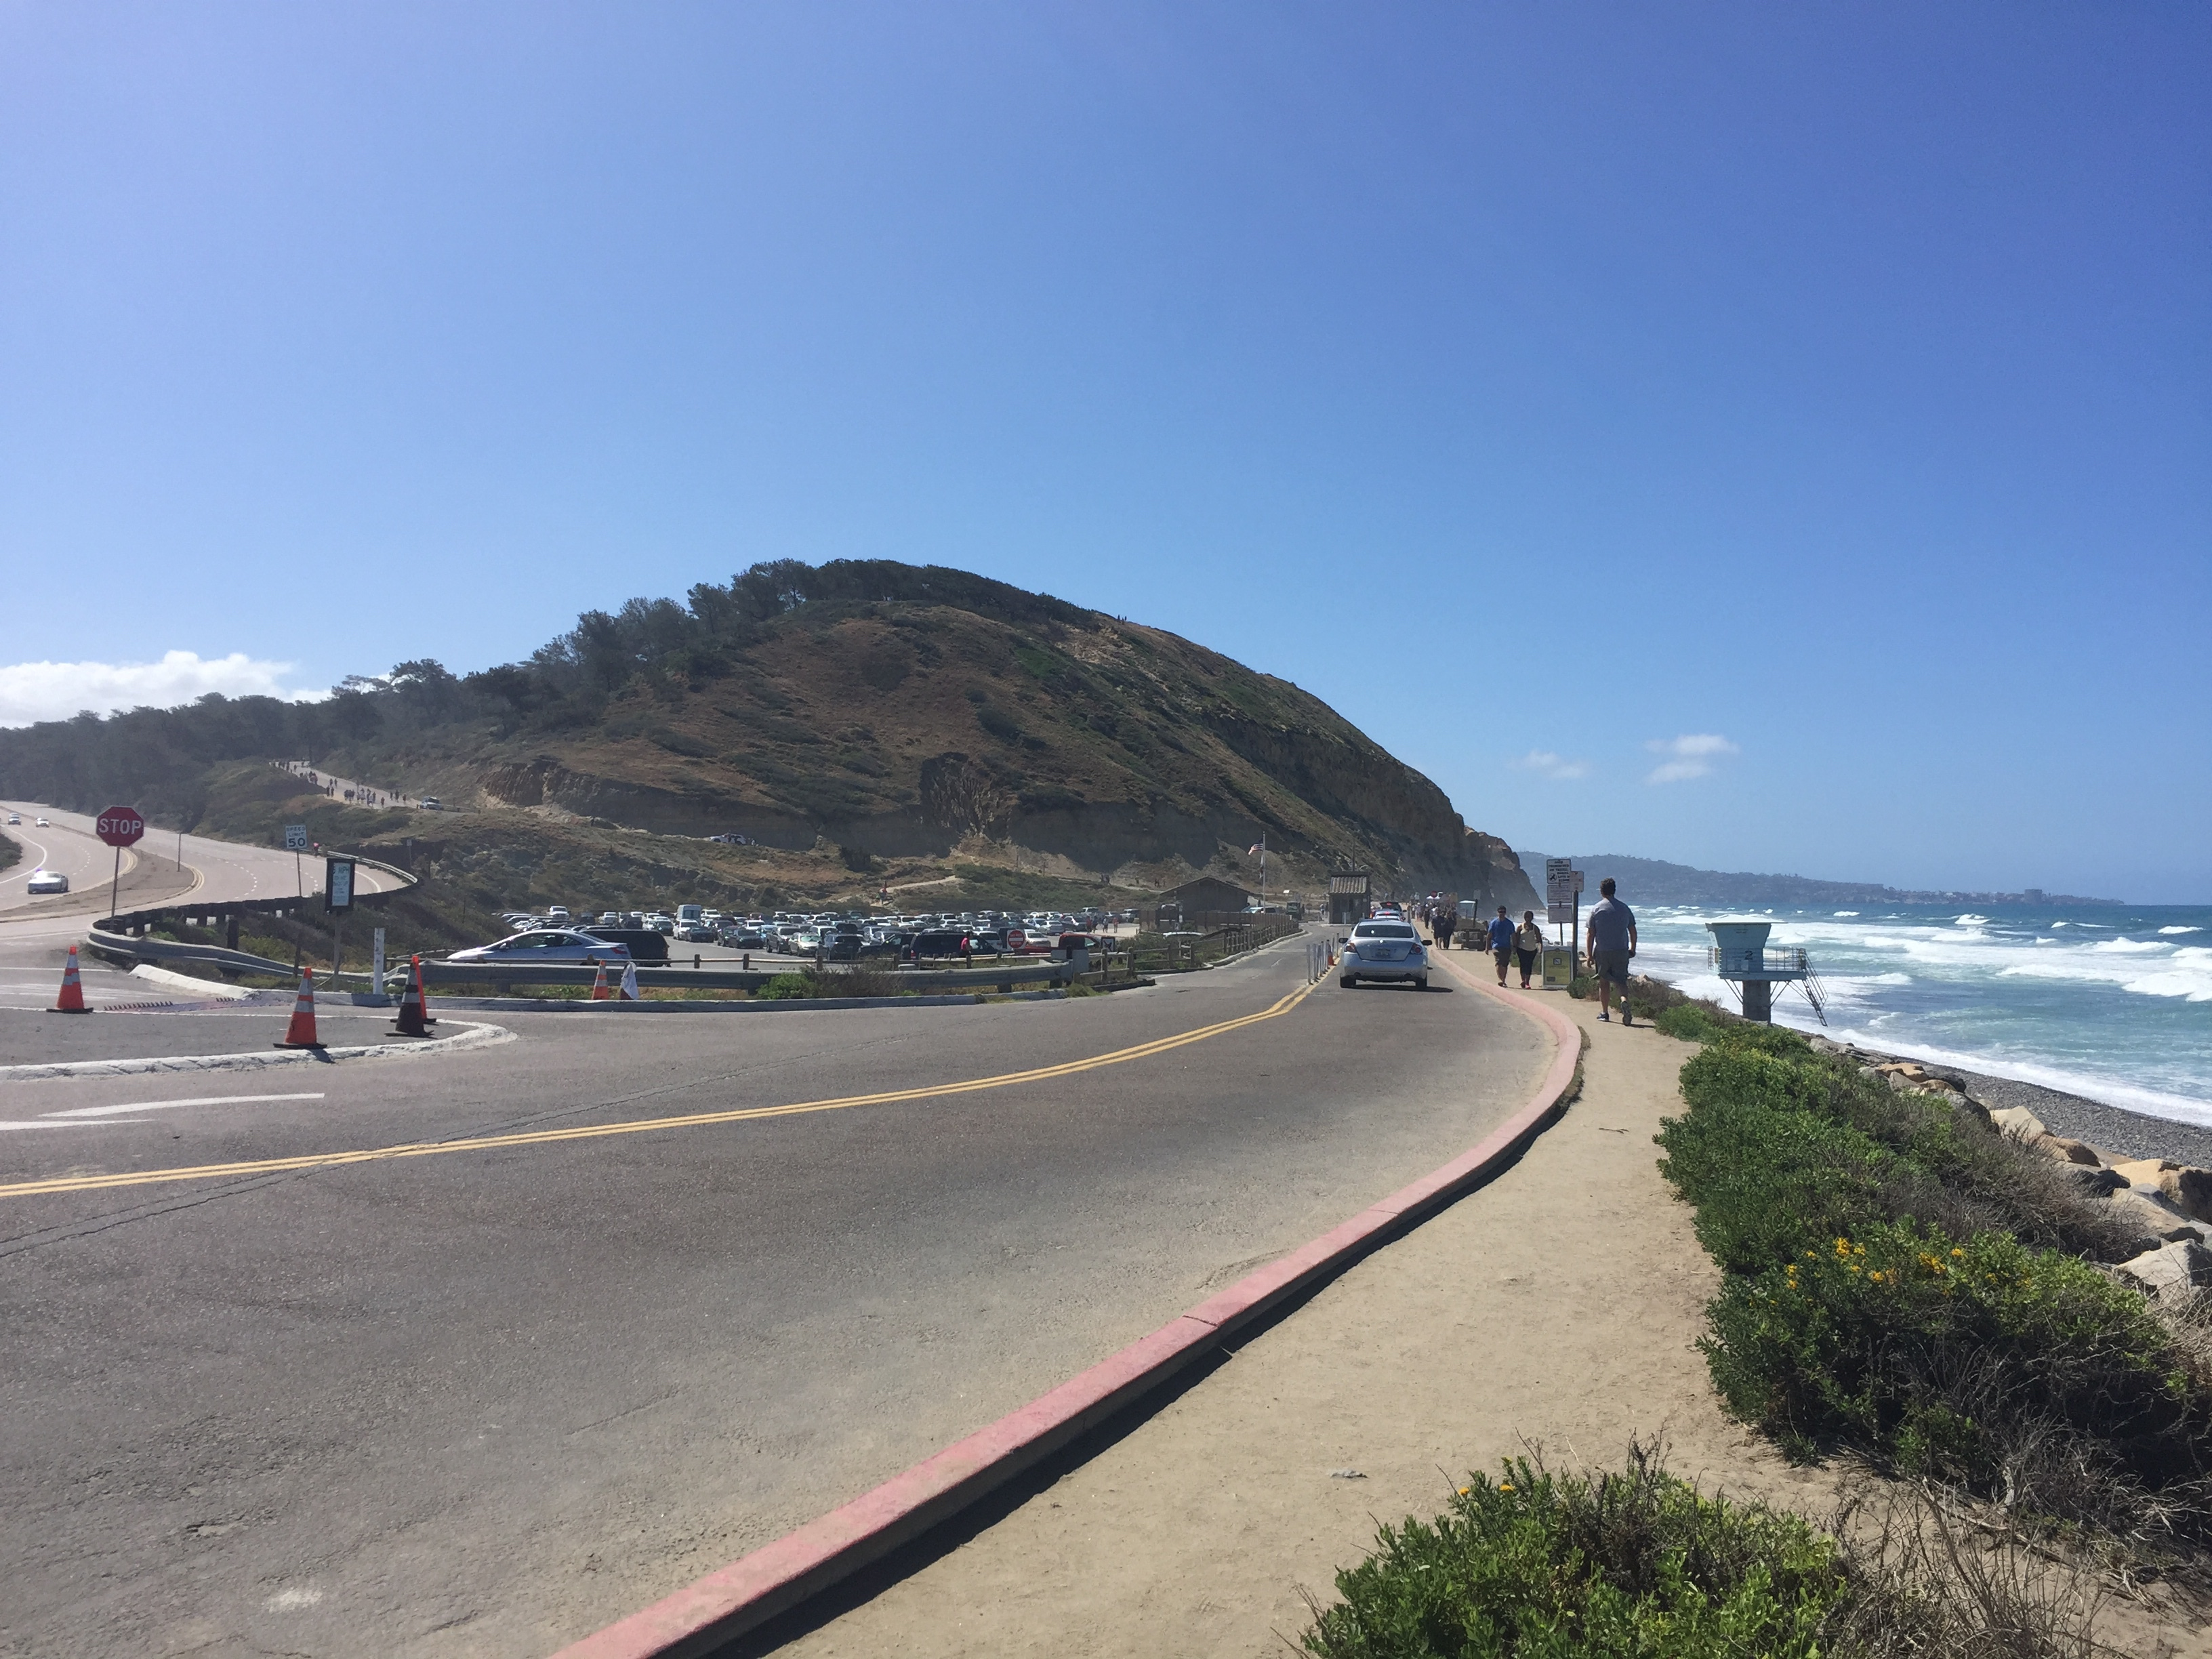 Parking lot full of cars at Torrey Pines State Beach.